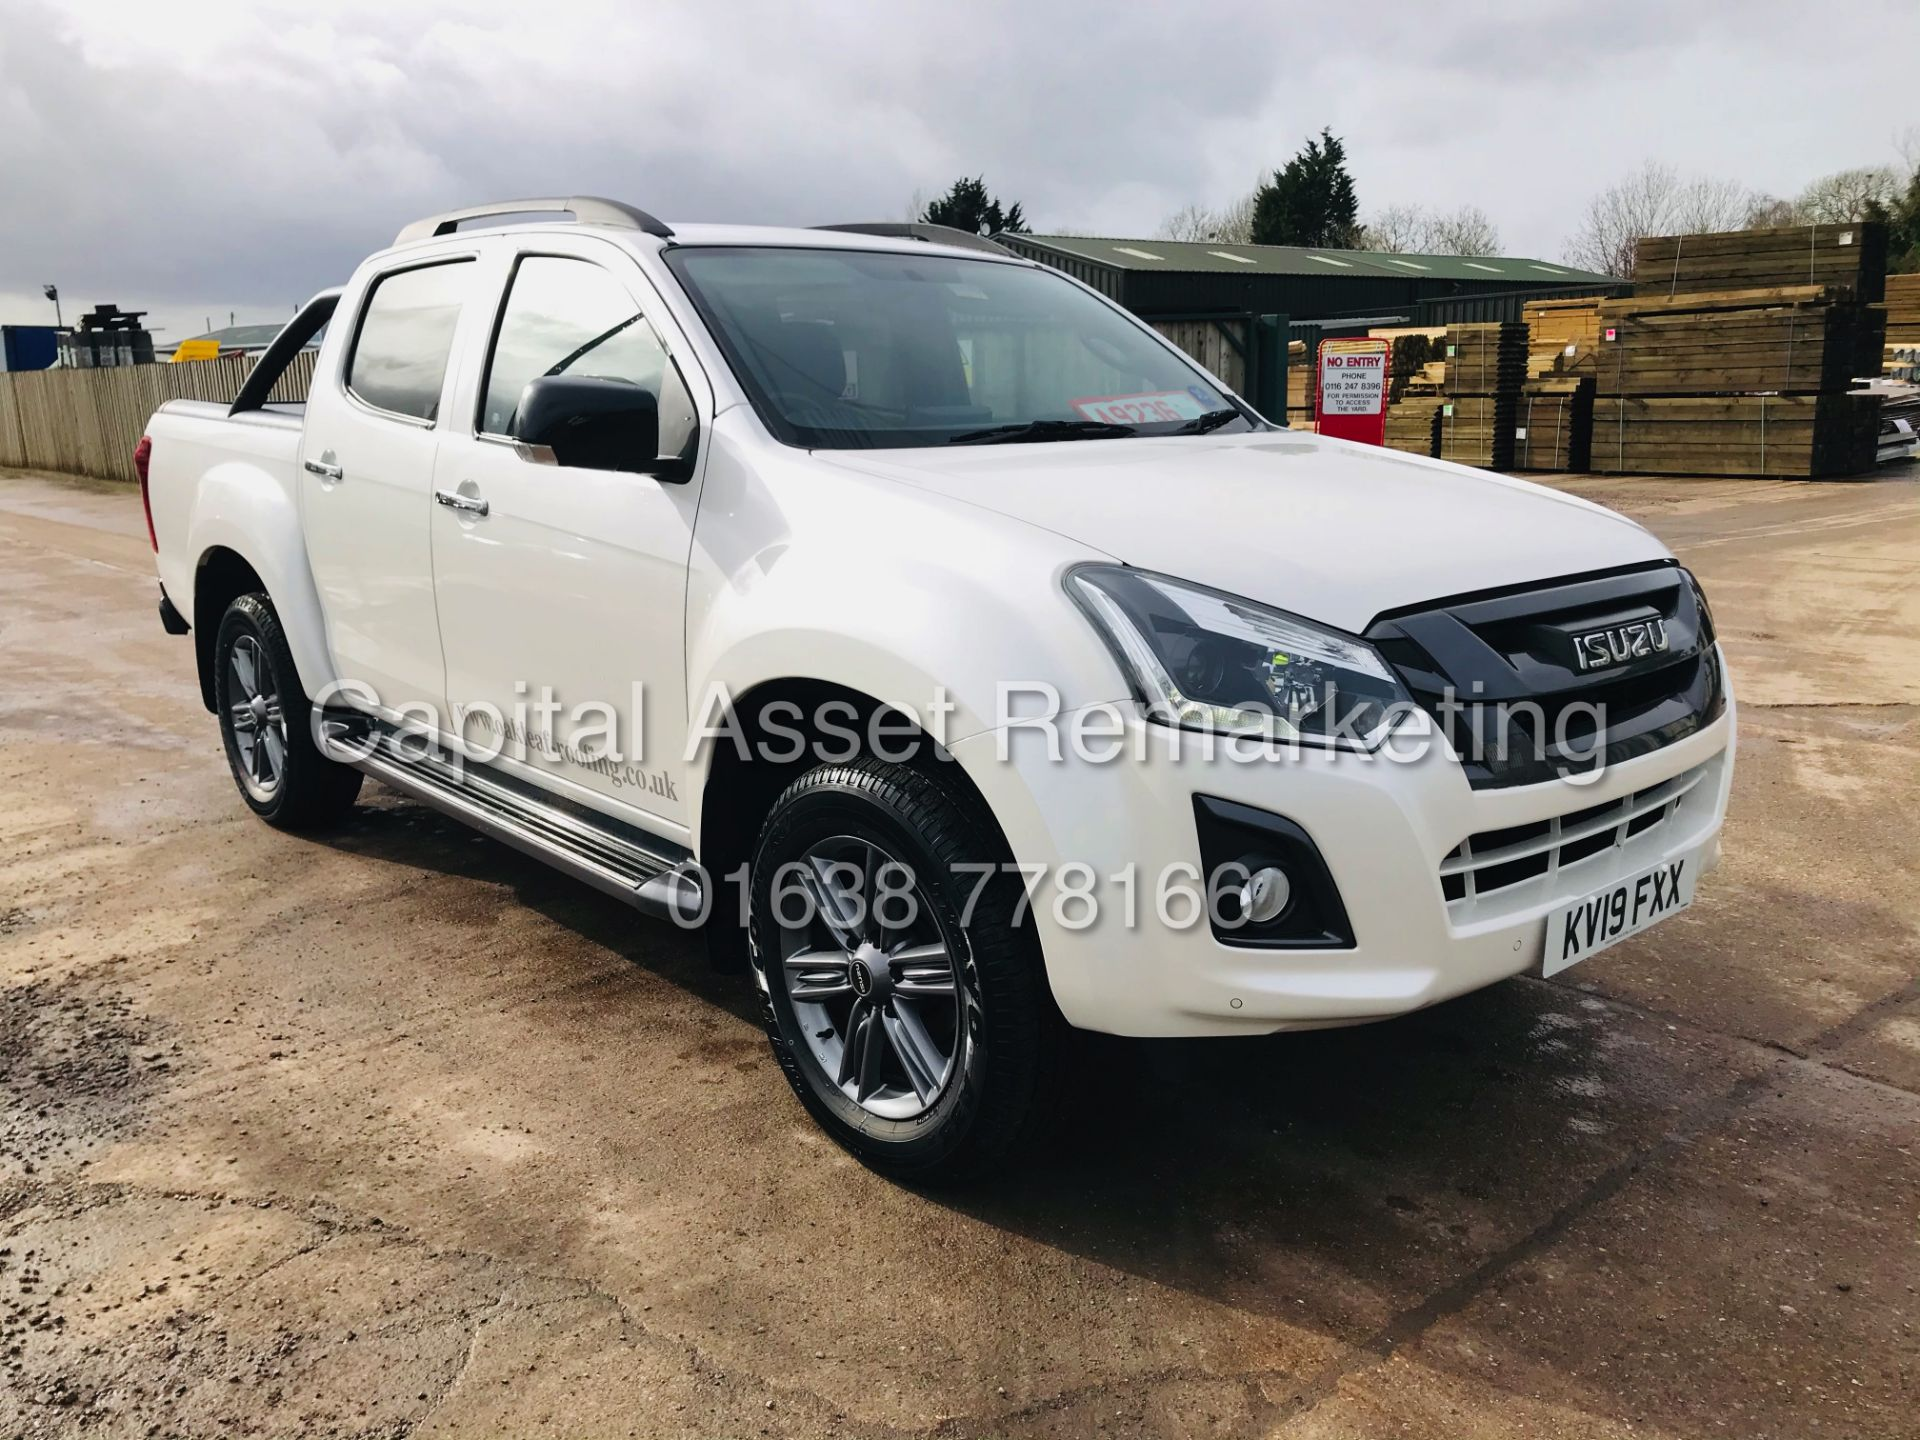 "(On Sale) ISUZU D-MAX ""BLADE"" AUTO - 1 OWNER (2019 - EURO 6) LEATHER - SAT NAV *TOP SPEC* - Image 3 of 34"